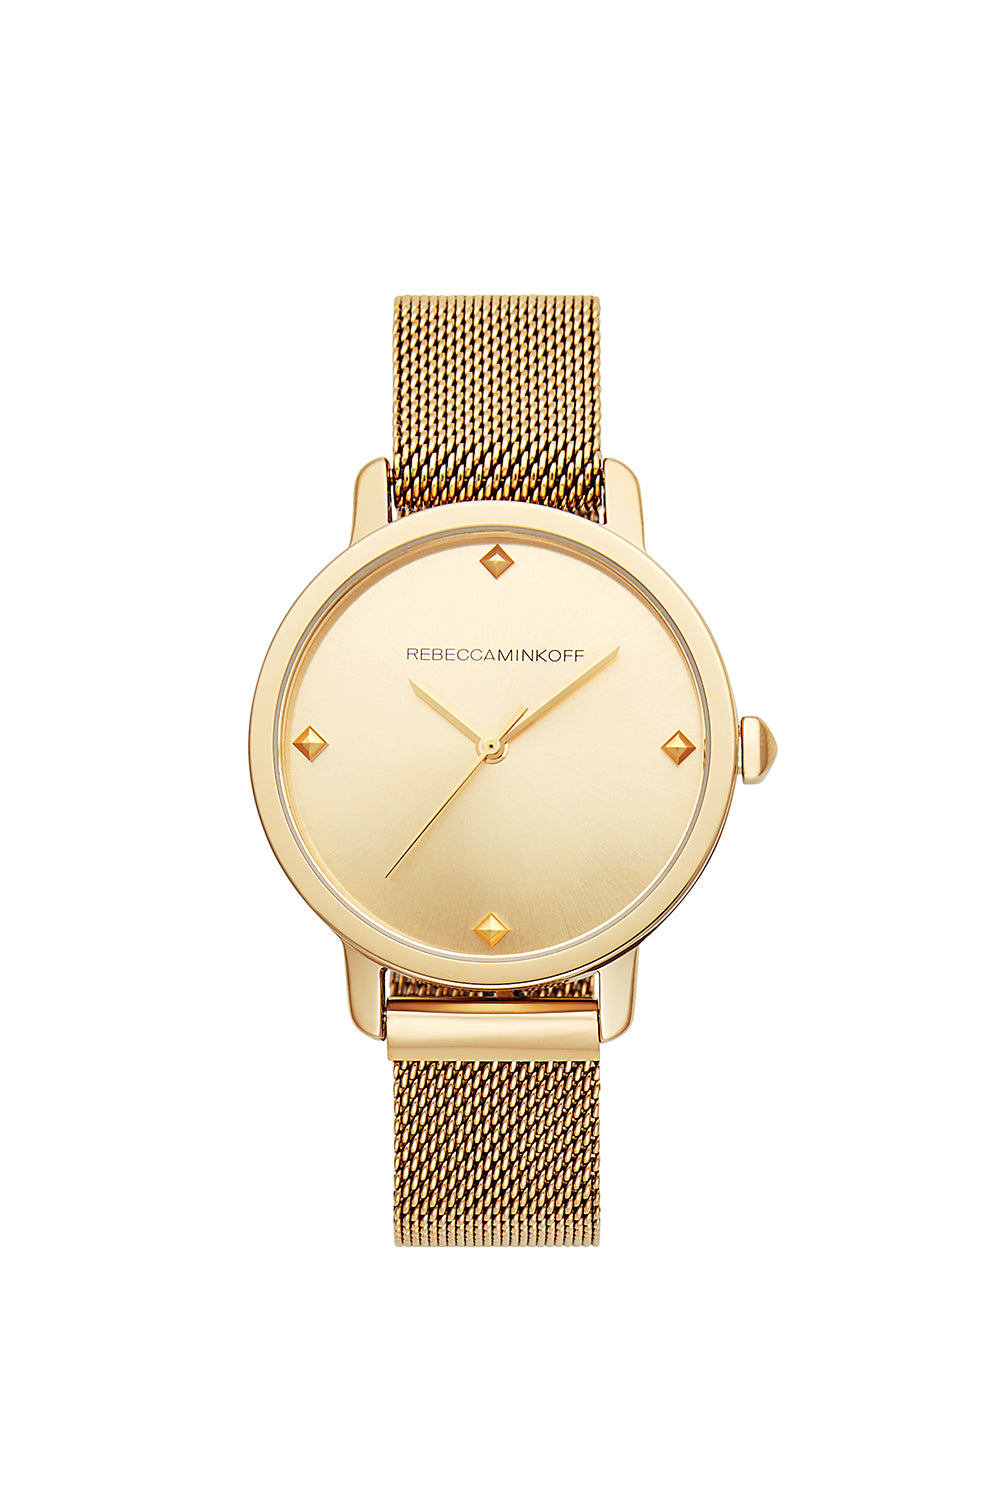 BFFL Gold Tone Mesh Bracelet Watch, 36MM